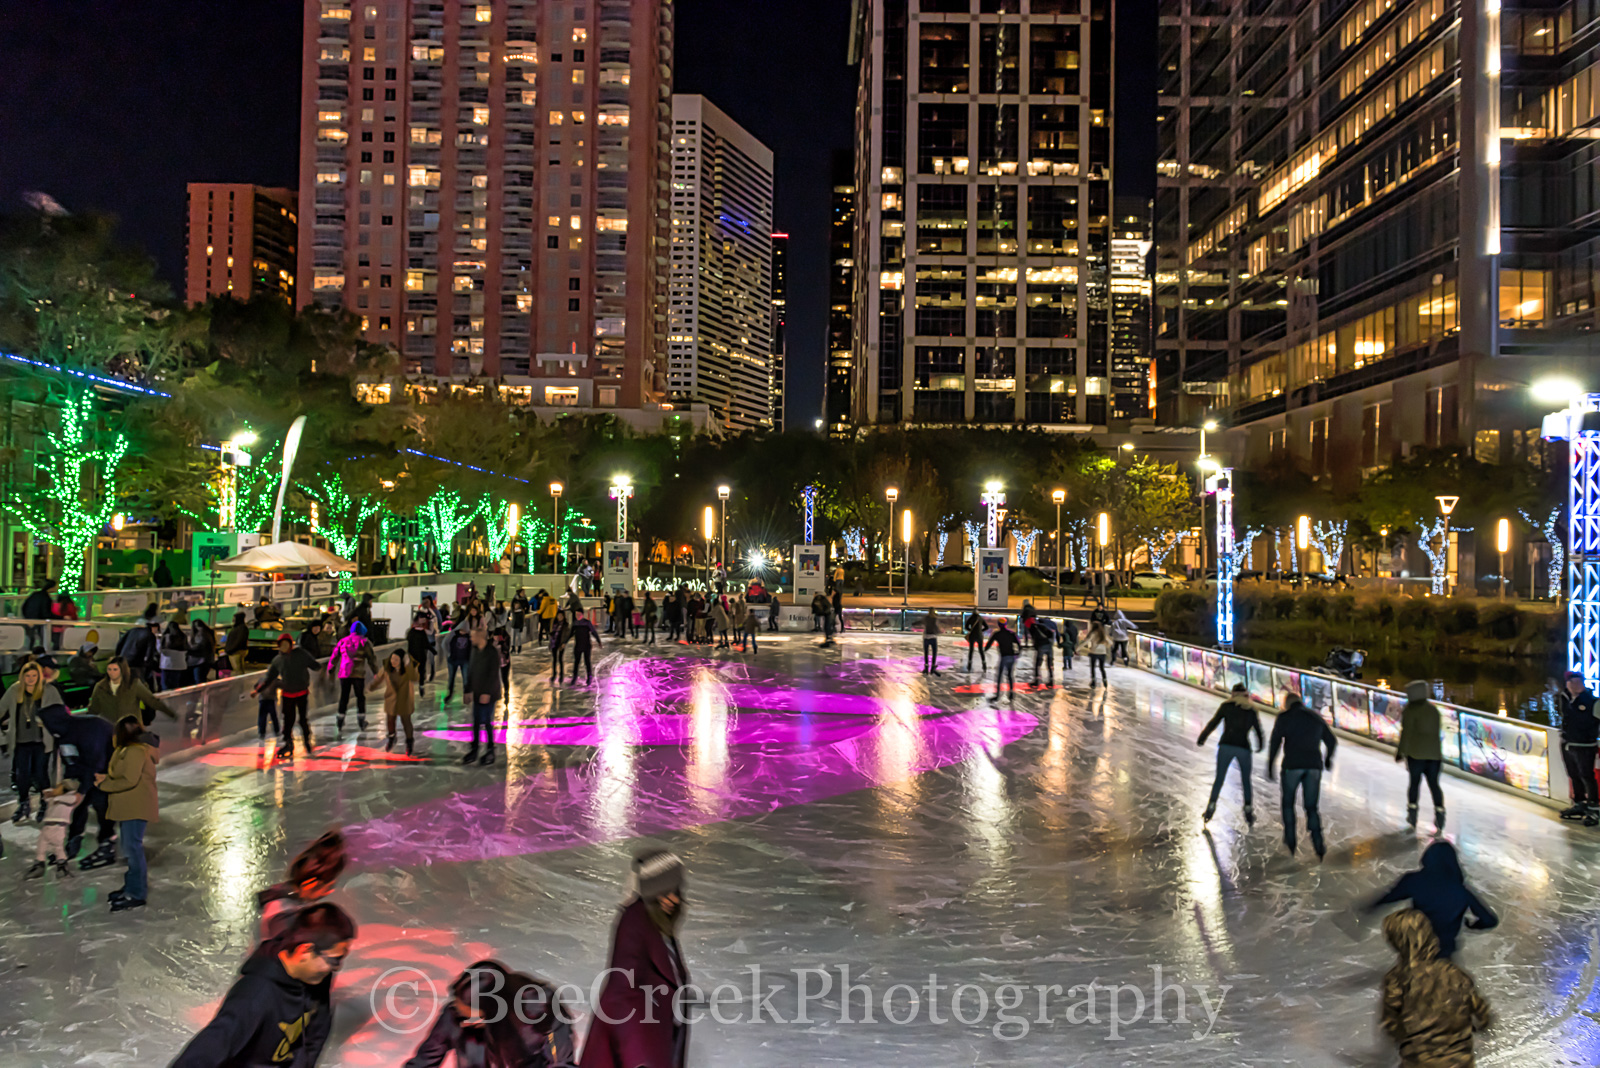 Discovery Green park, Houston, city, cityscape, cityscapes, downtown, festive, holiday, ice skating, lifestyles, people, season, urban, winter, photo